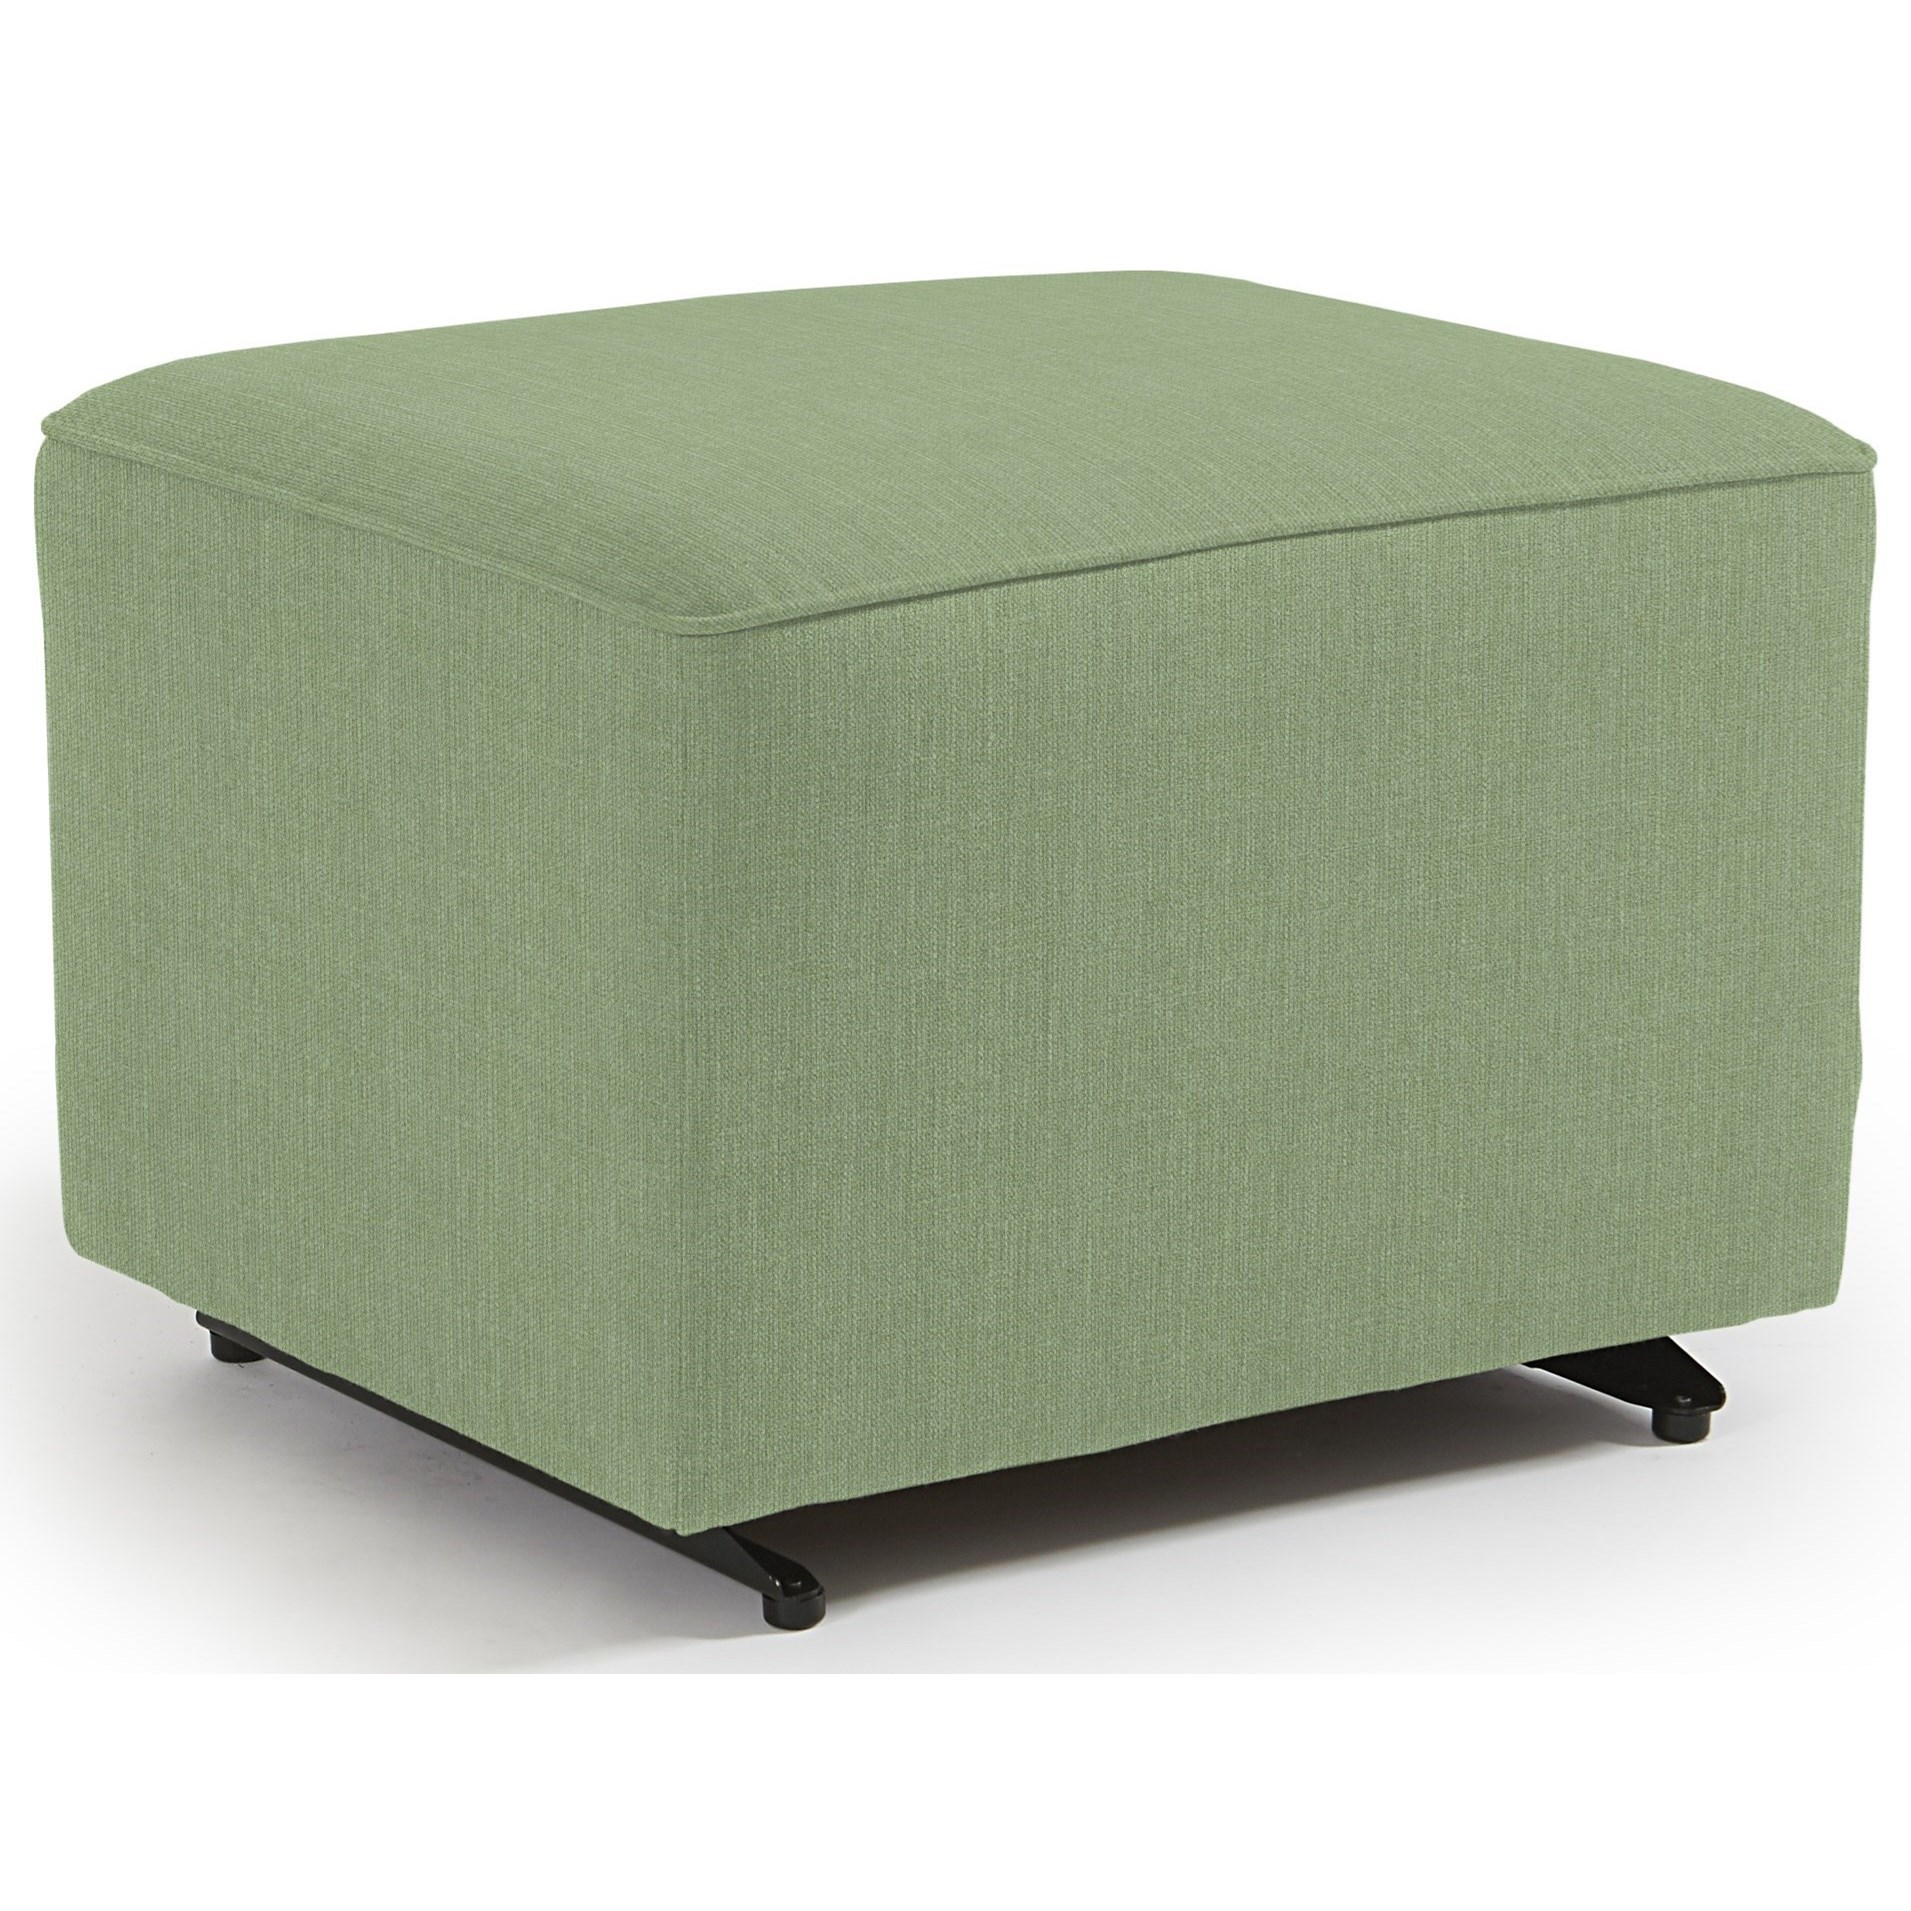 Kacey Ottoman W/ Glider Base by Best Home Furnishings at Rooms and Rest